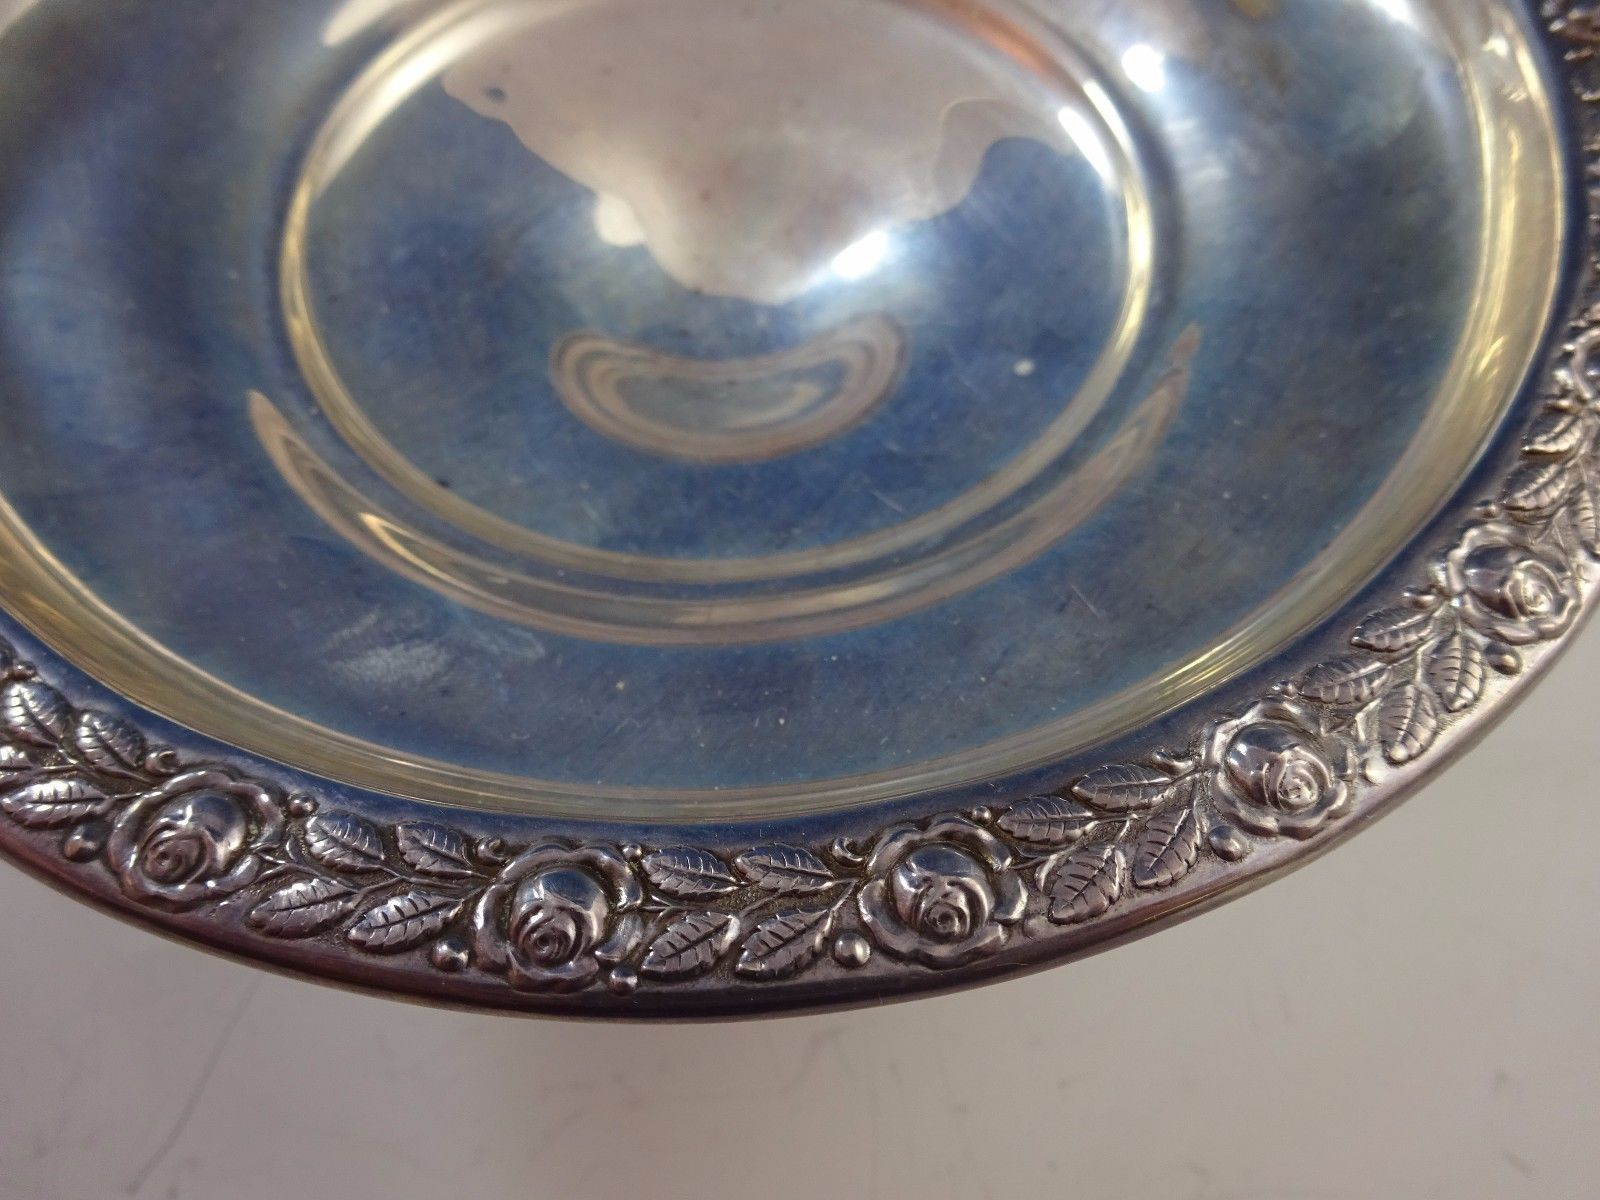 Fancy Vintage Sterling Silver Bowl w/ Pedals & Handles w/ Floral Edge